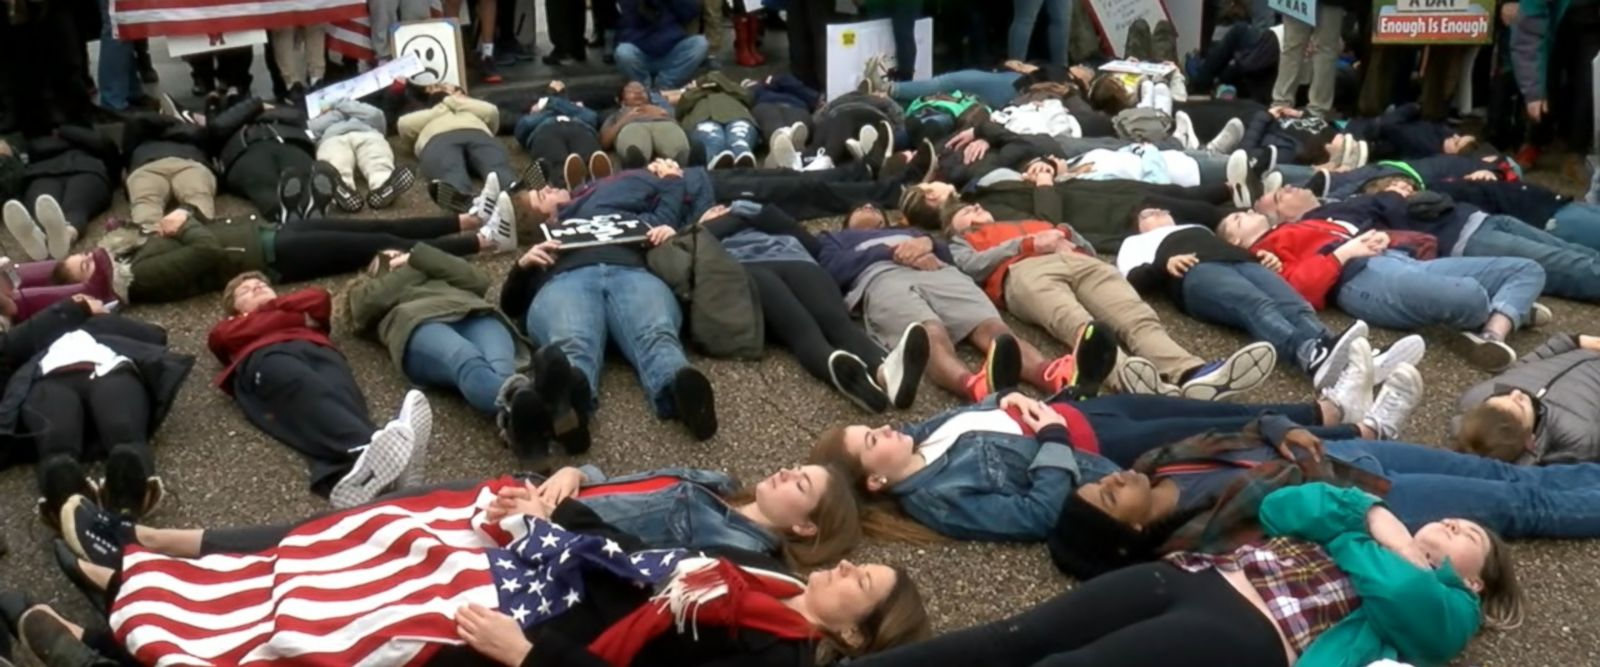 Protesters laid on the floor for several minutes to represent victims of school shootings.